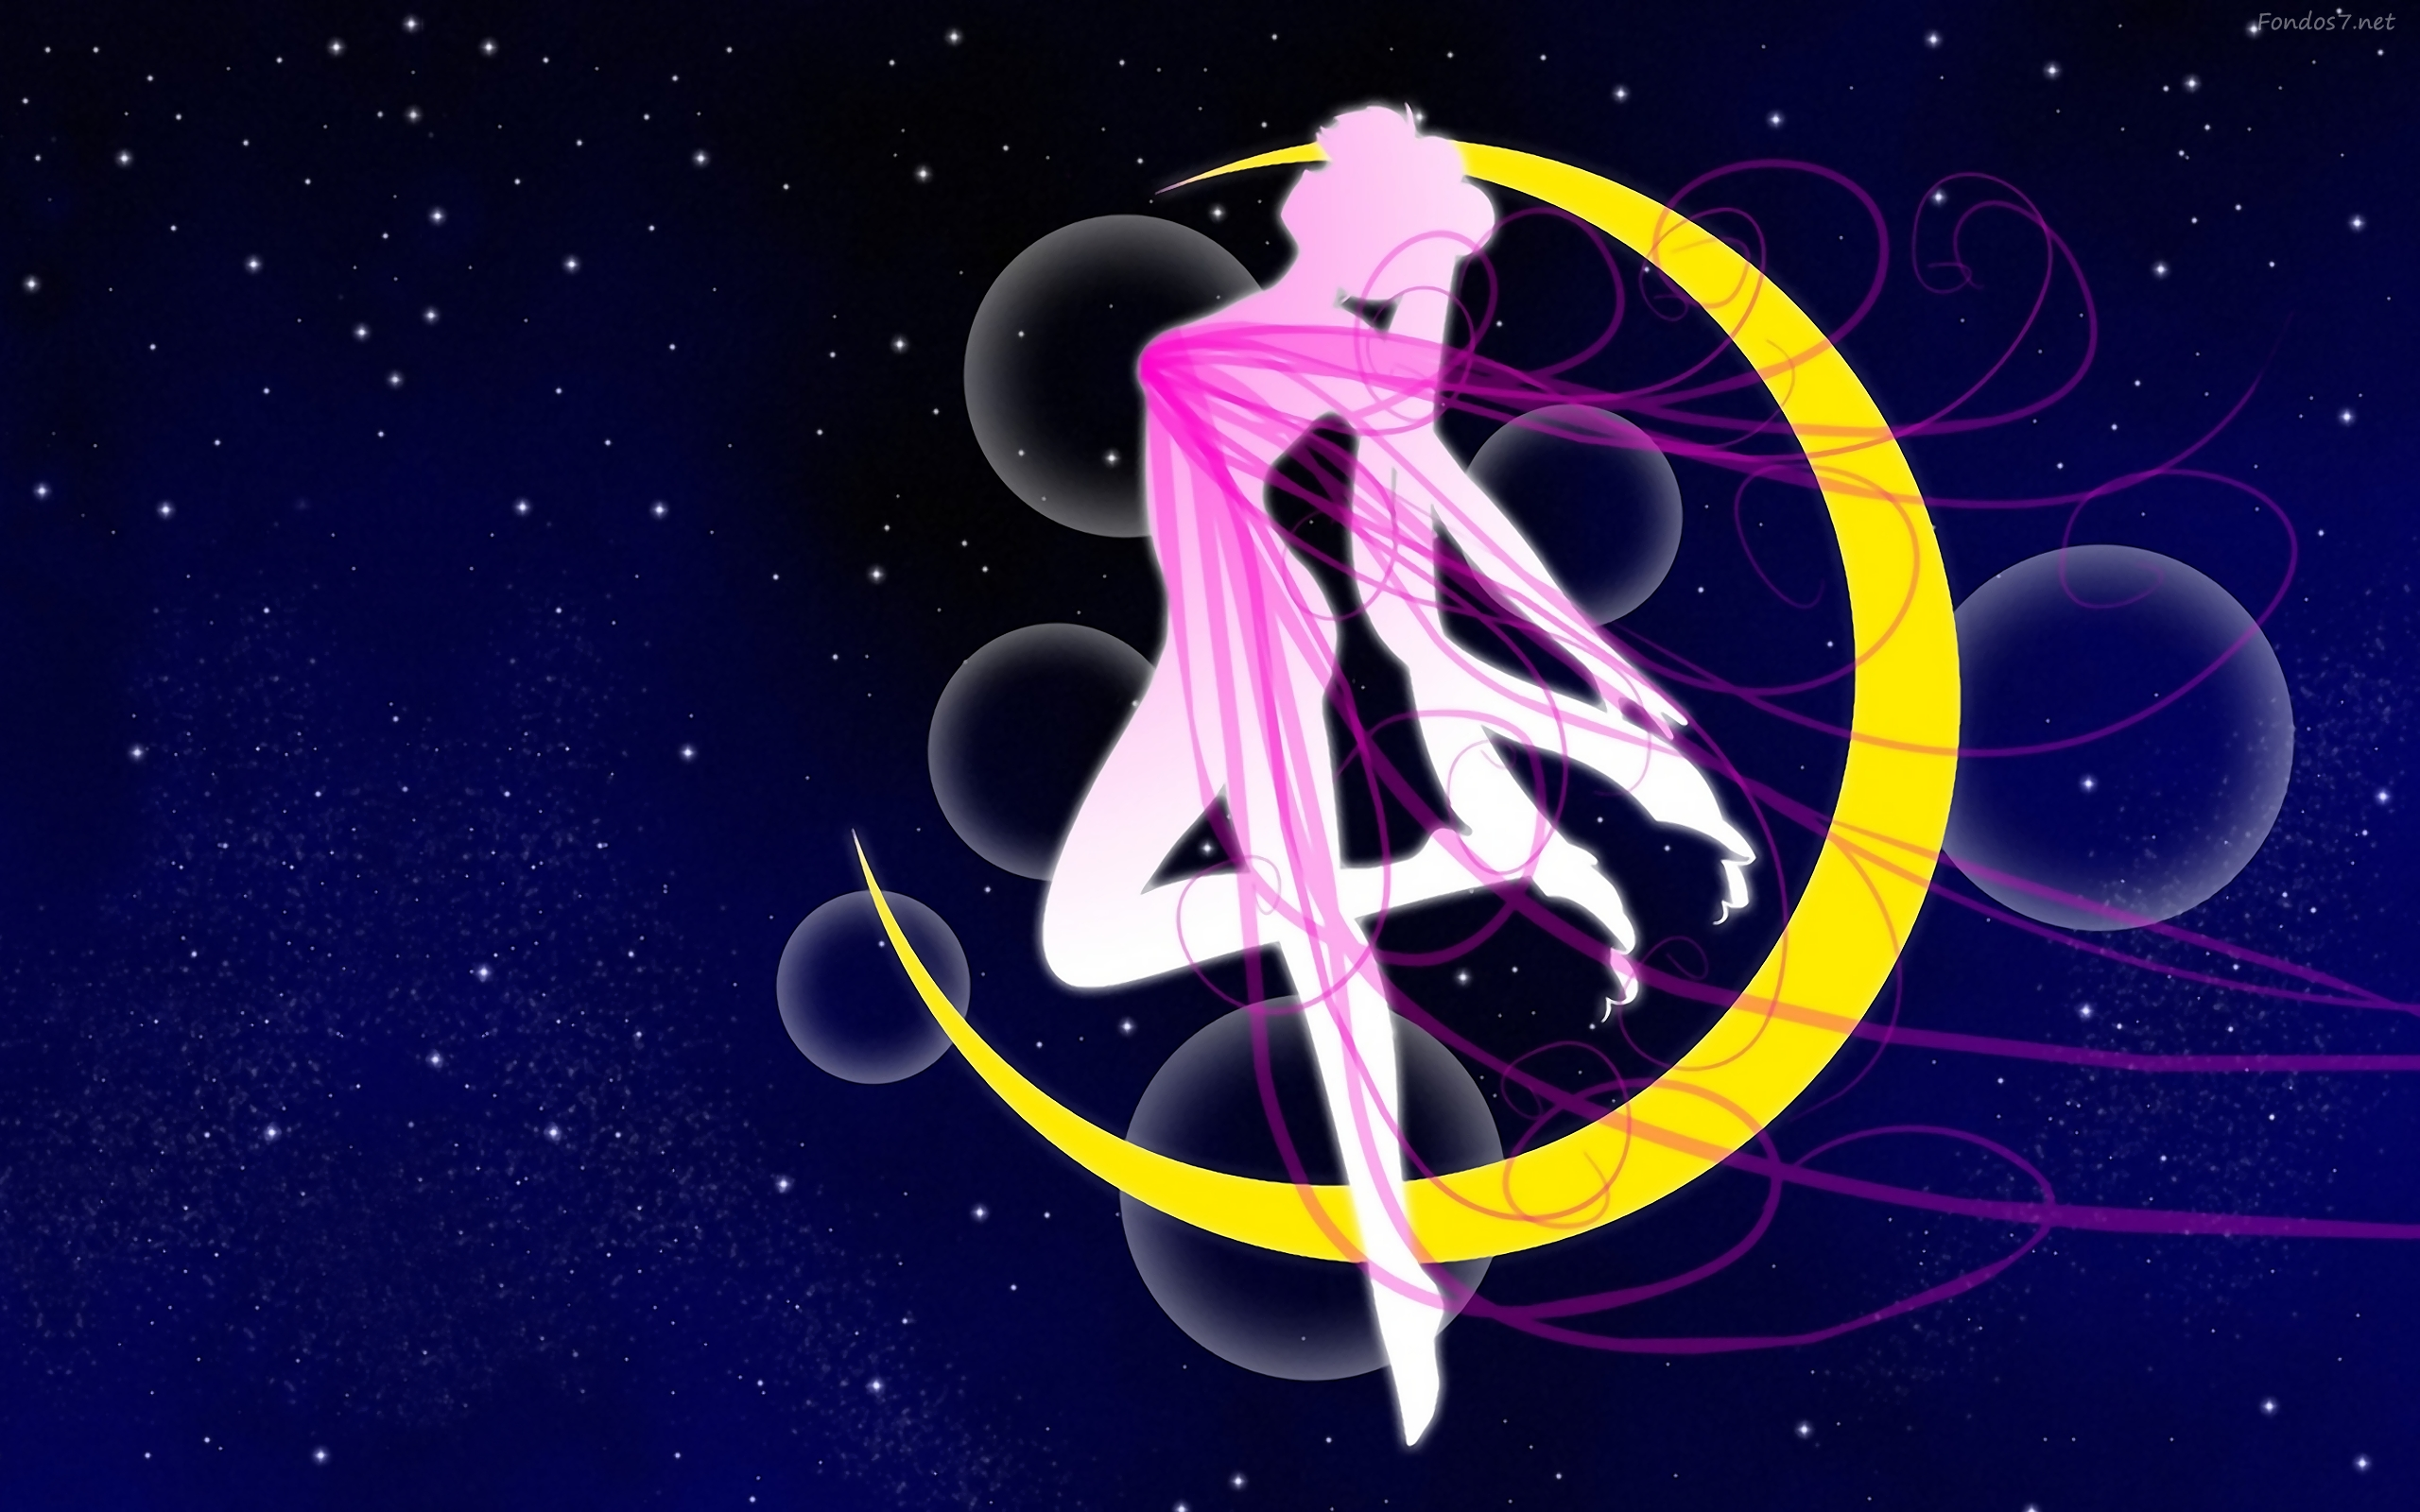 Sailor Moon Wallpaper Free For Windows